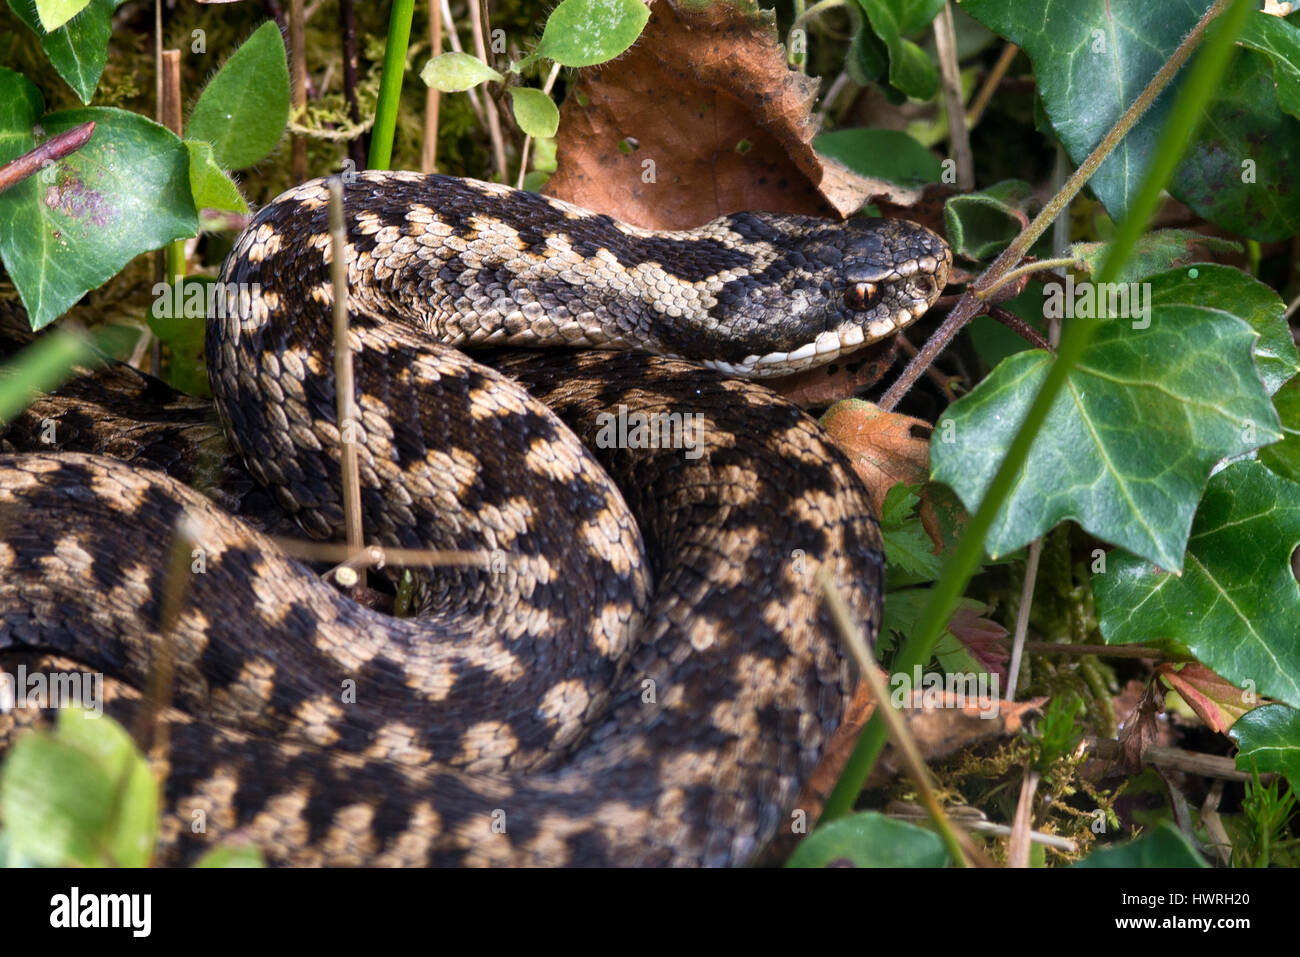 An Adder snake - Stock Image